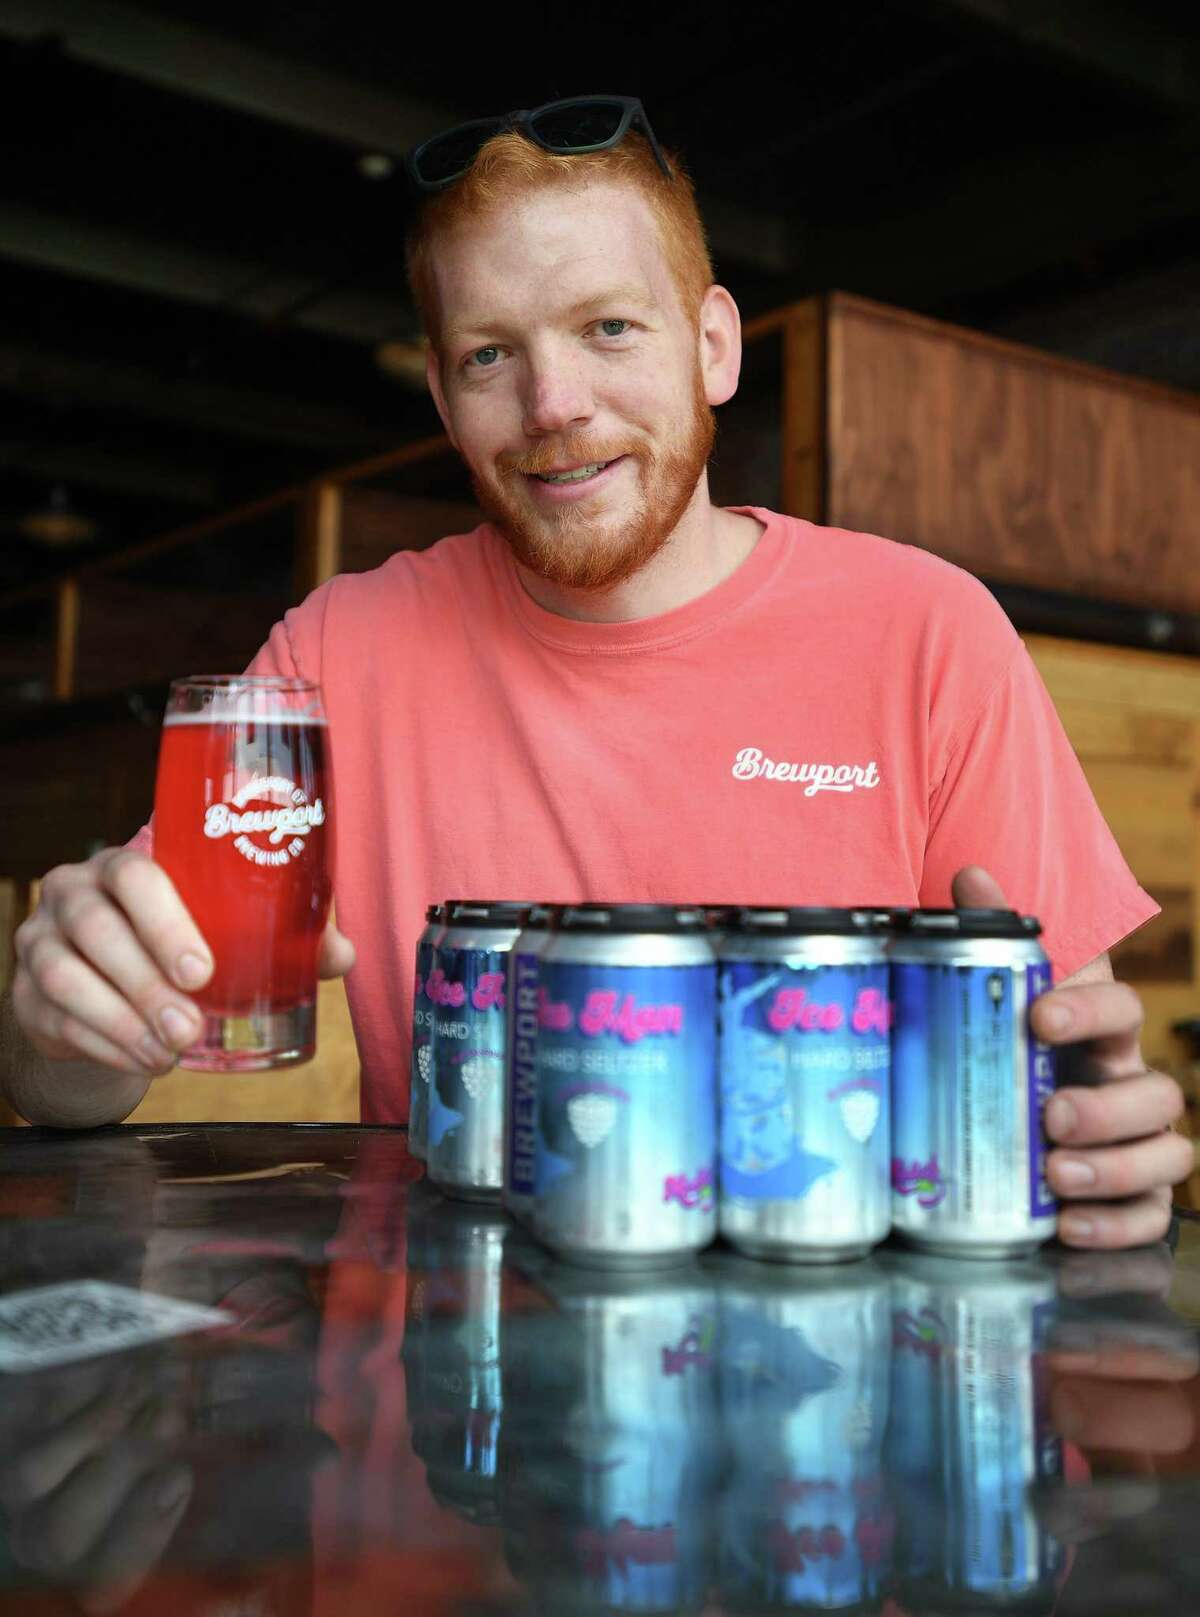 Director of Brewing Operations Jeff Browning, Jr. developed the new Ice Man hard seltzer at Brewport in Bridgeport, Conn. on Thursday, May 20, 2021.